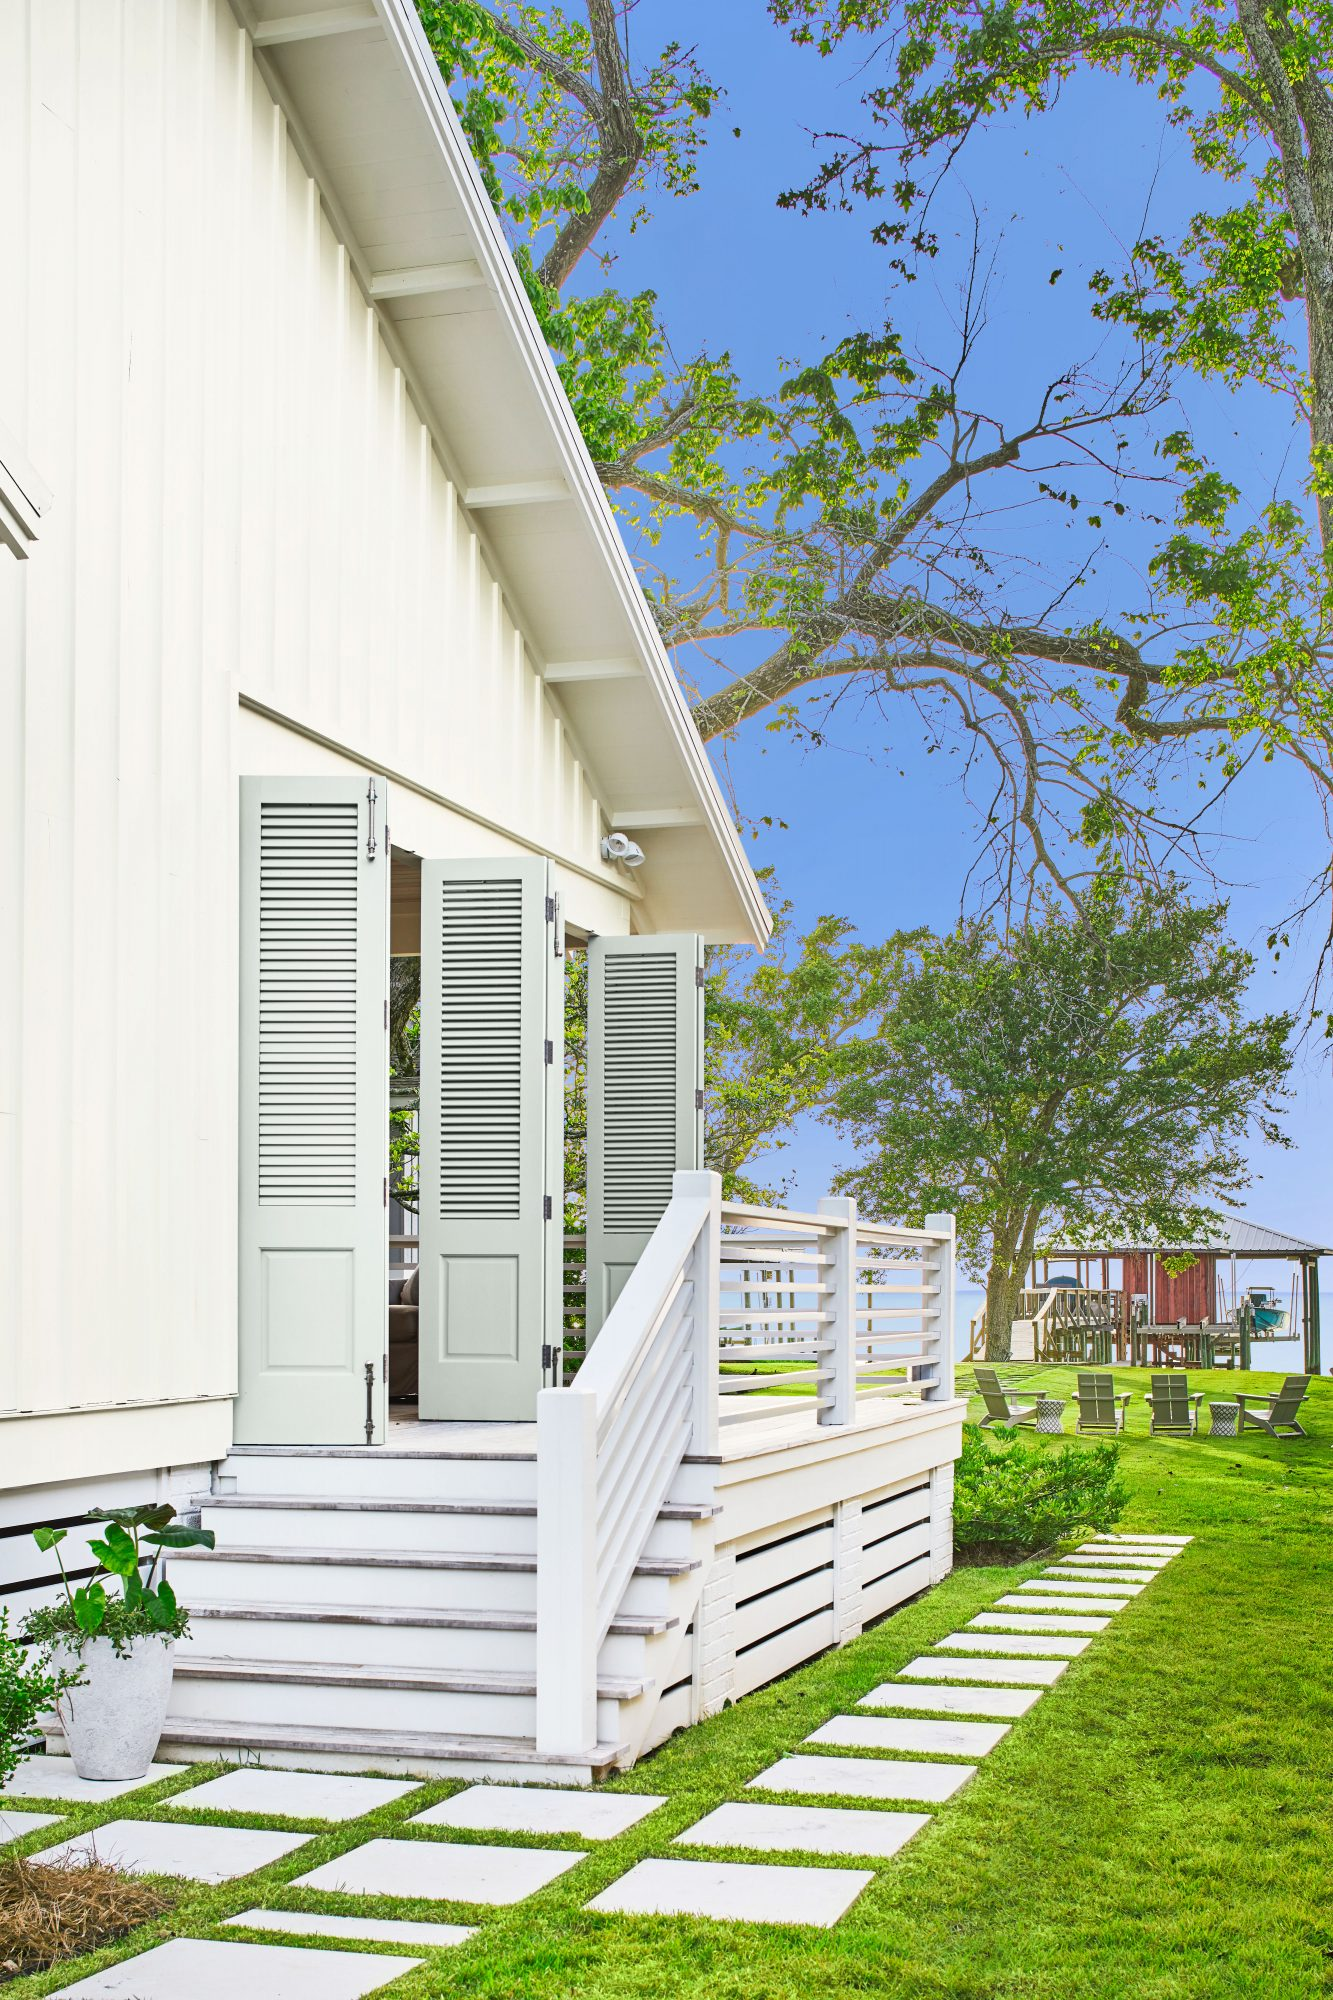 Coastal cottage exterior with shutter doors